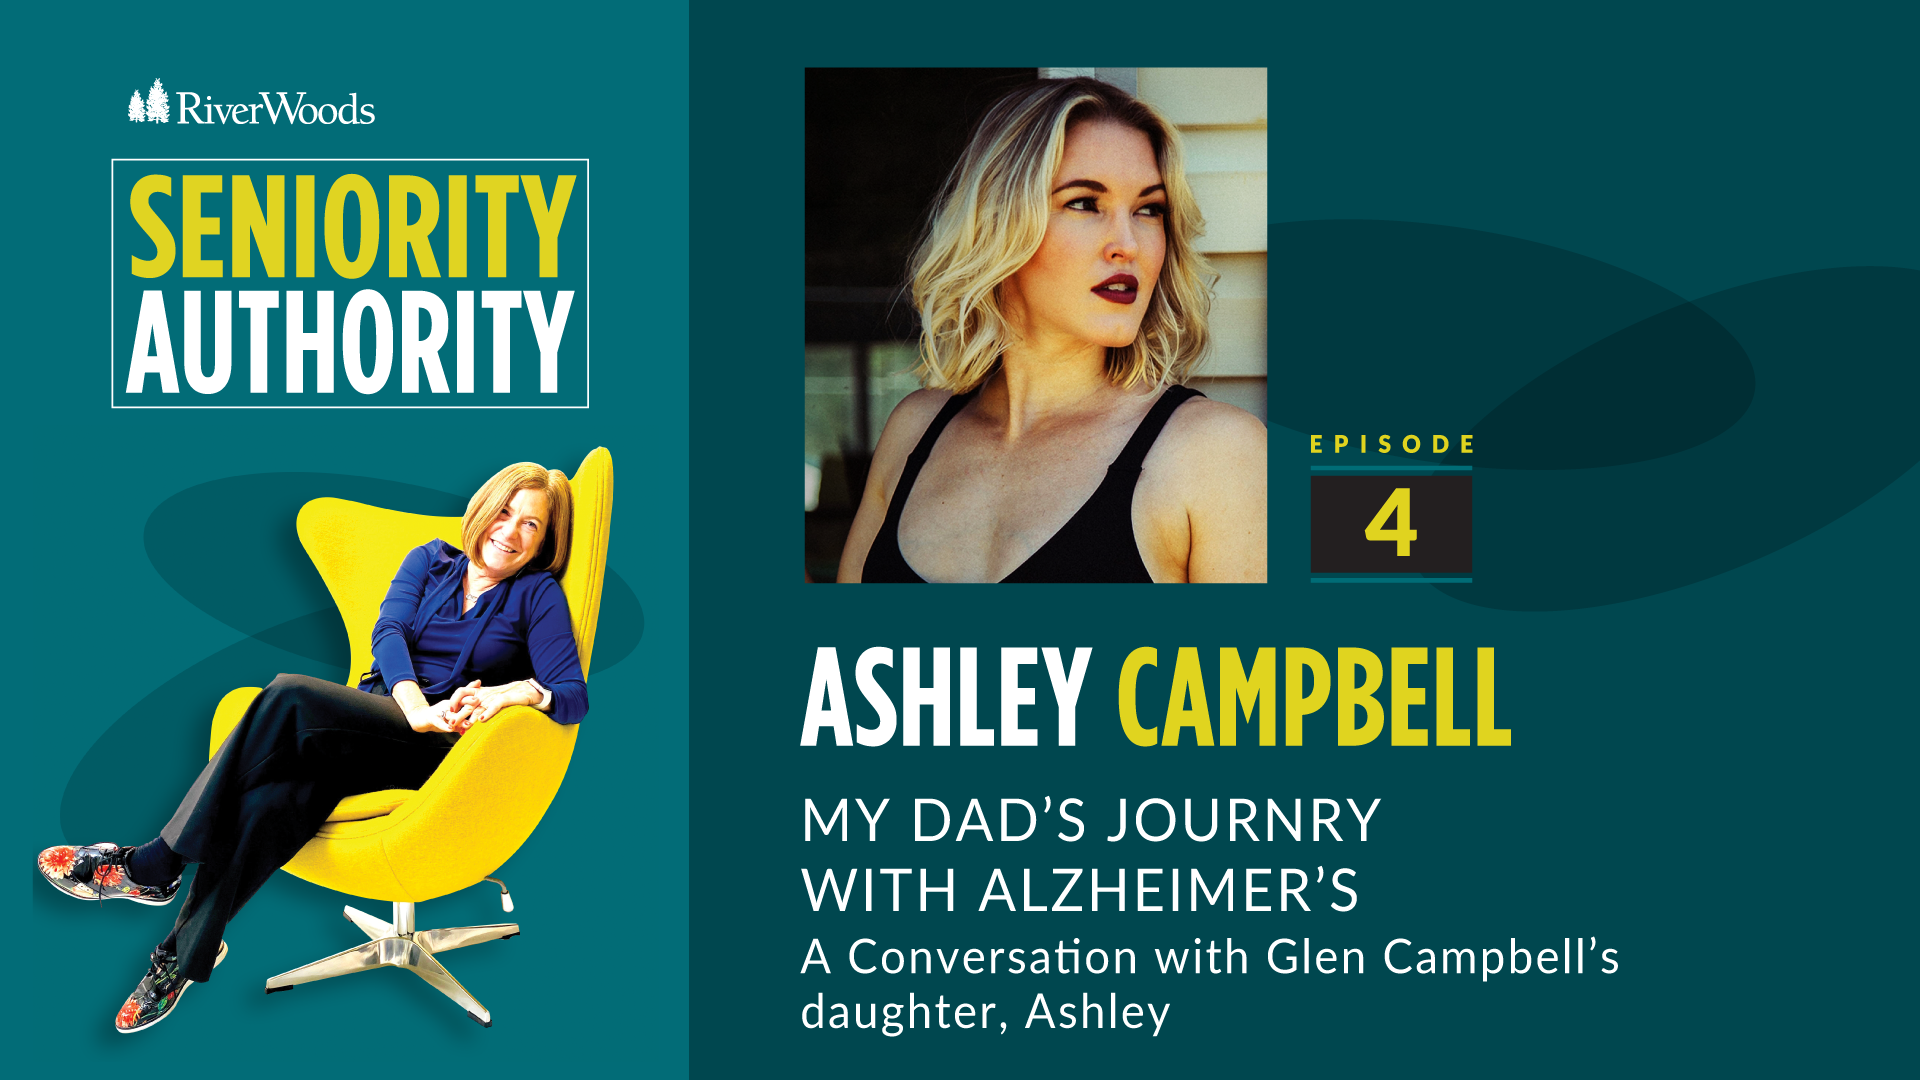 Alzheimer's: How Ashley Campbell Helped Navigate Her Father's Illness